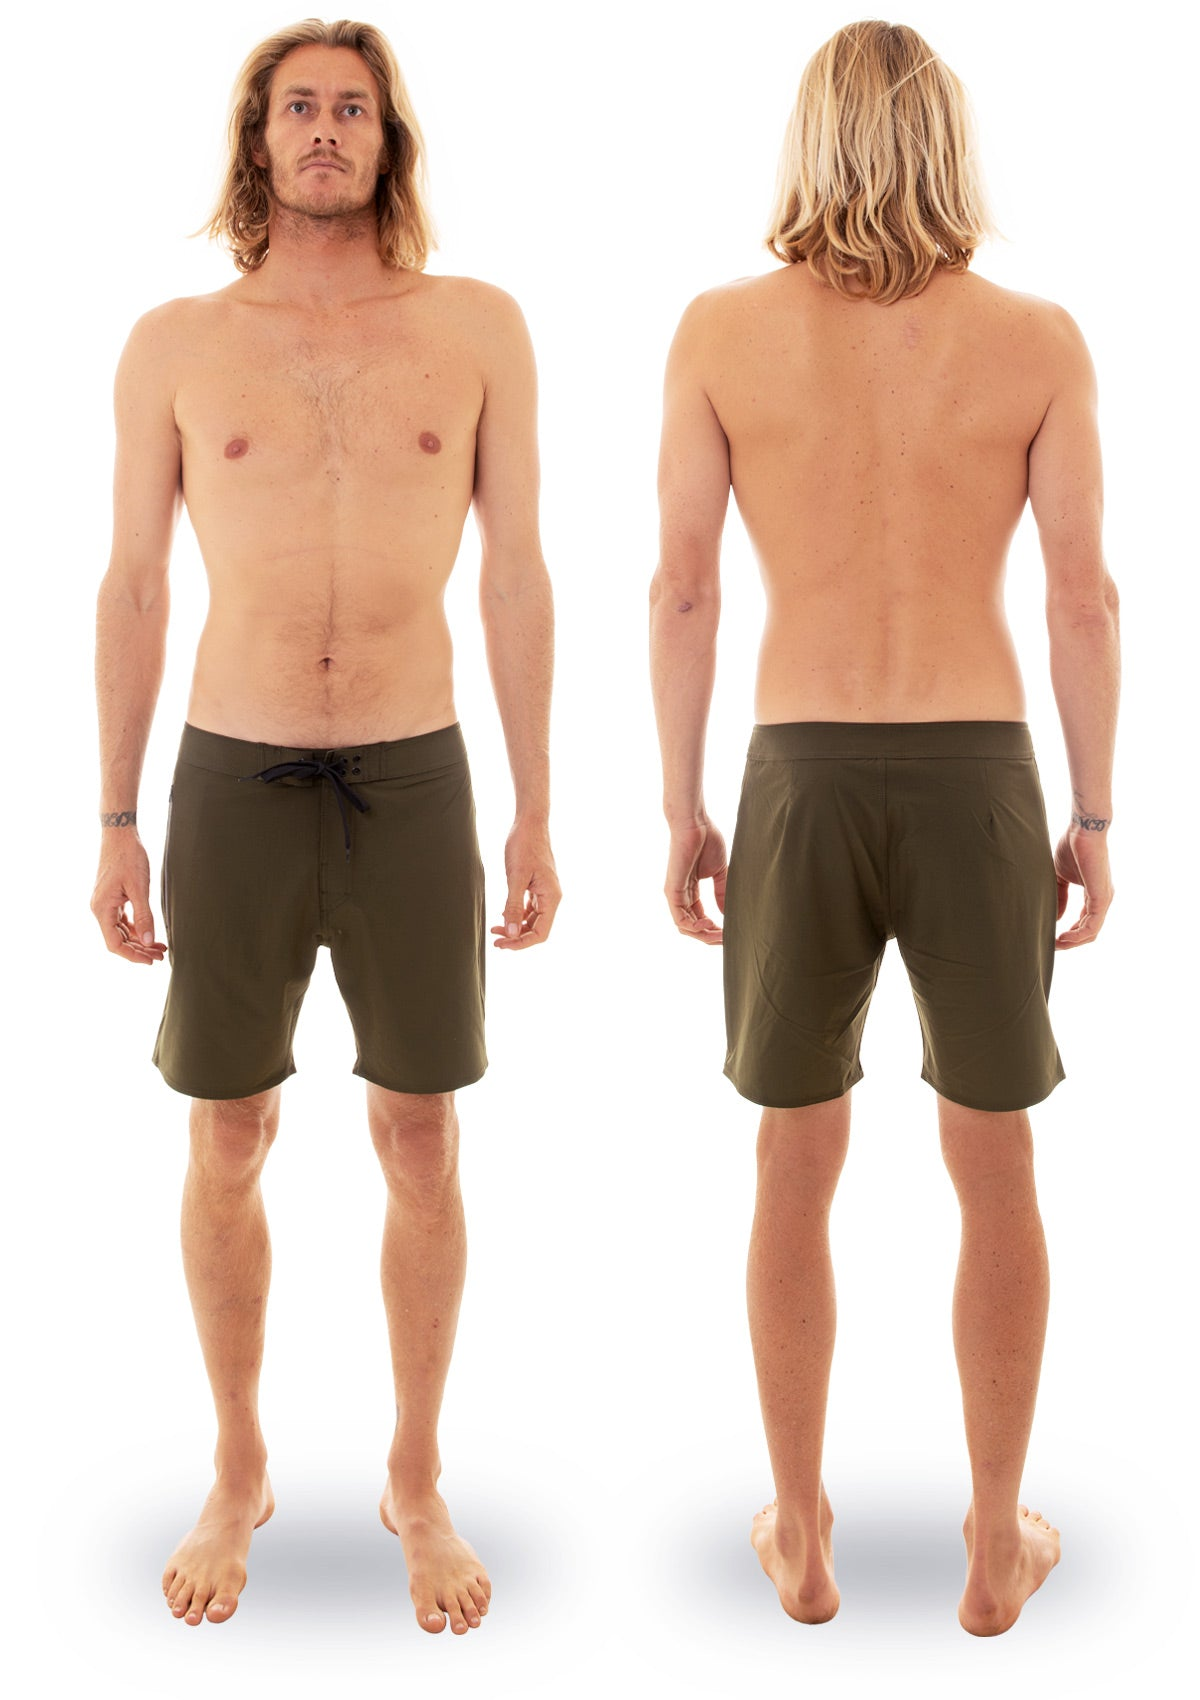 needessentials side mens surfing boardshorts non branded olive torren martyn